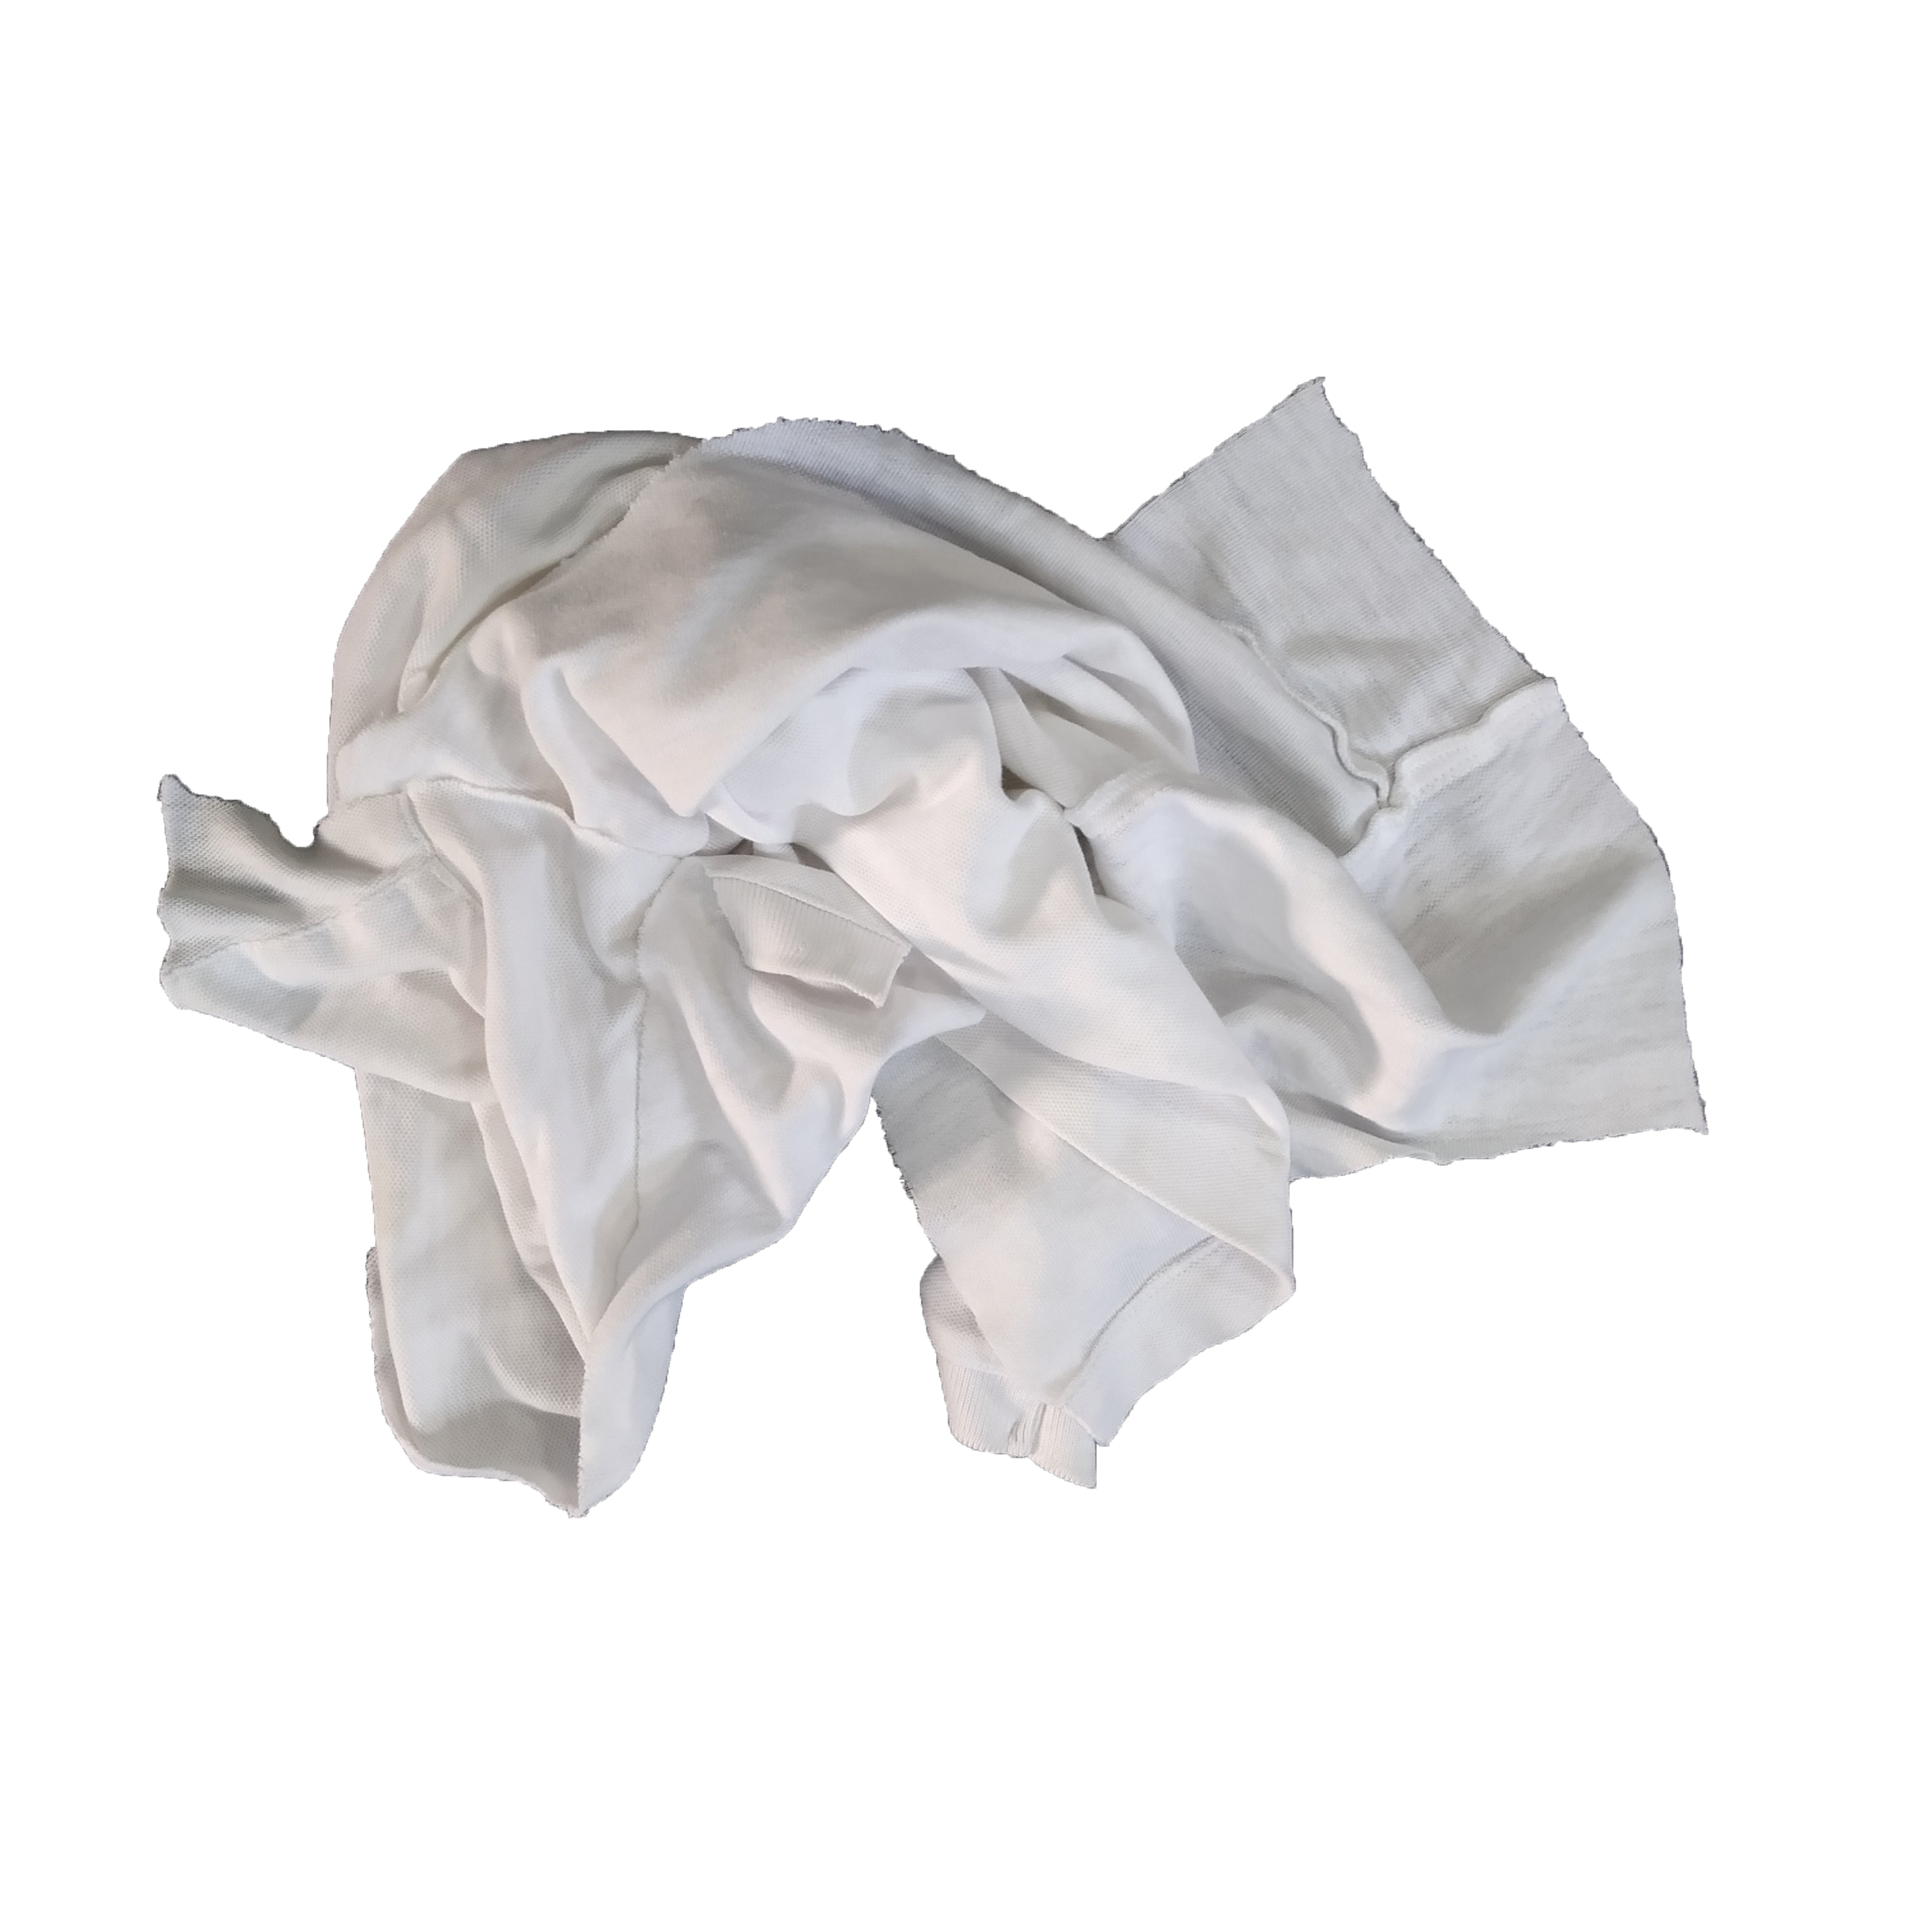 General cleaning 35-55cm waste cloth cut pieces white t shirt industria cotton rags